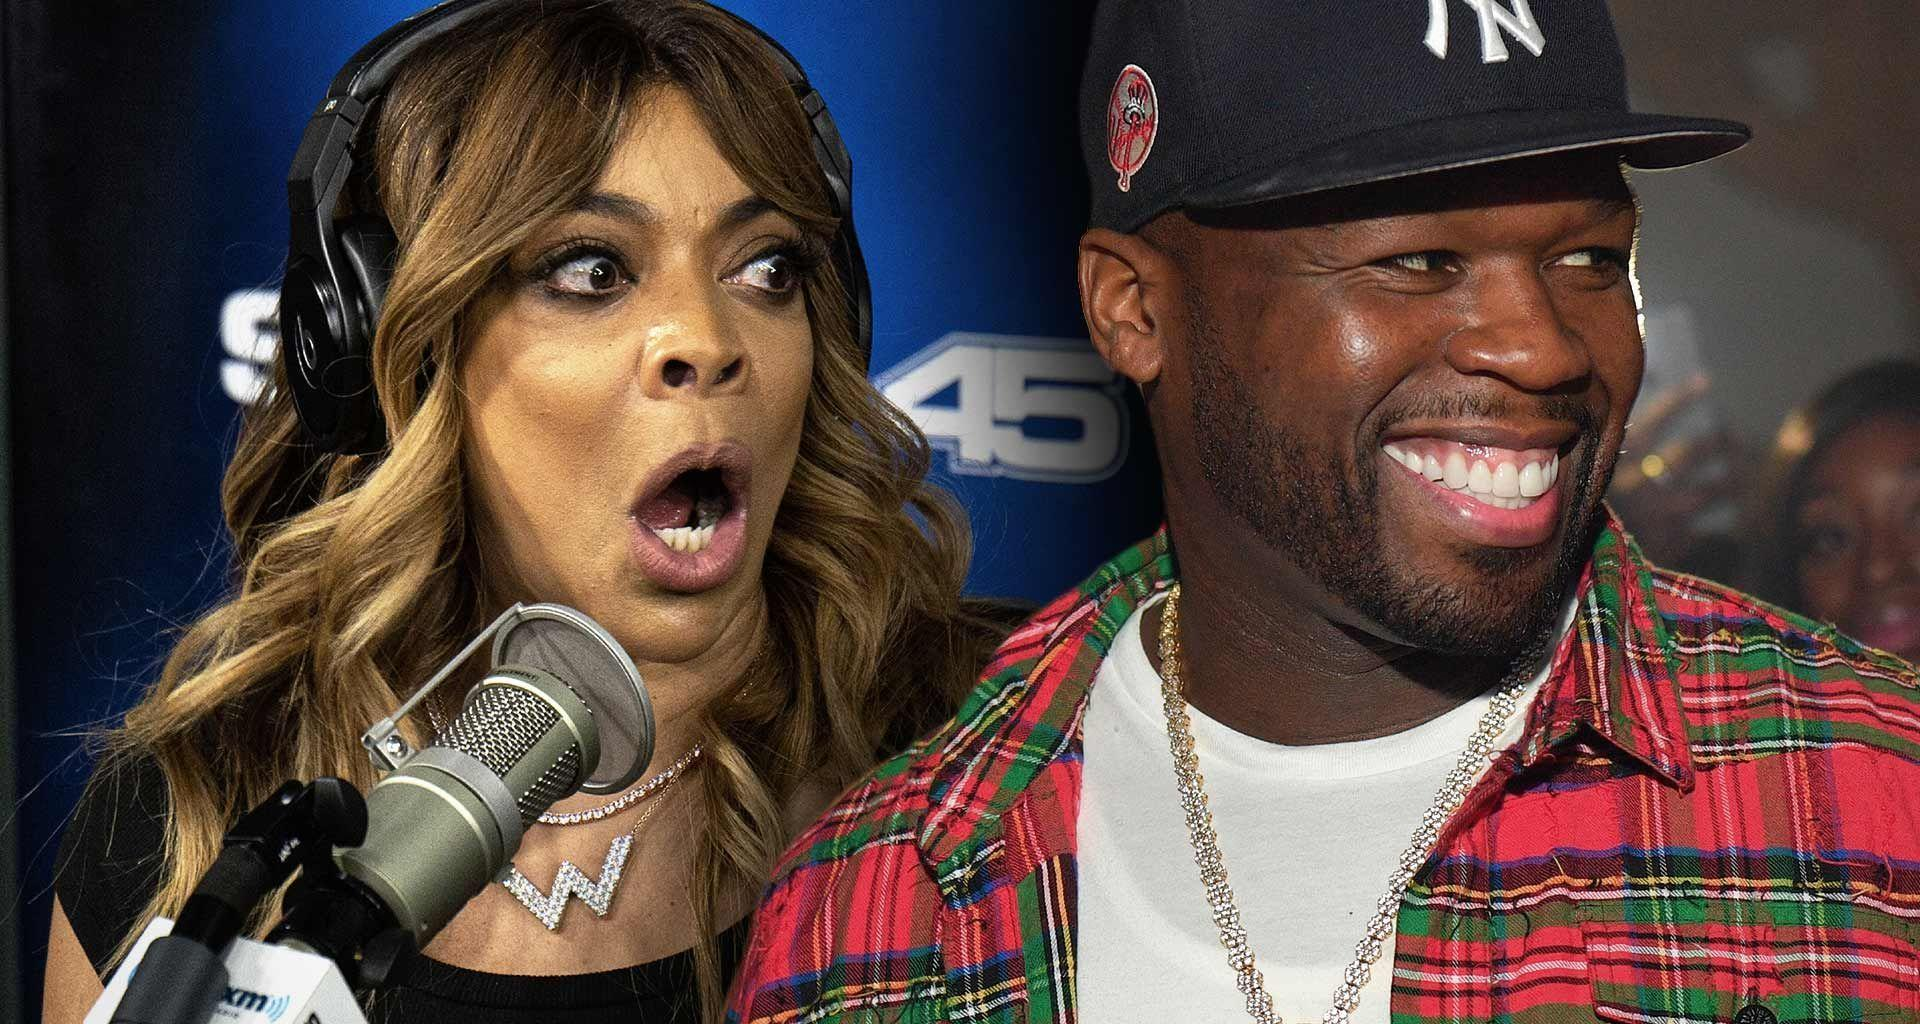 50 Cent Bashes Wendy Williams Again And Calls Her A 'Monster' - People Say He's Gone Too Far